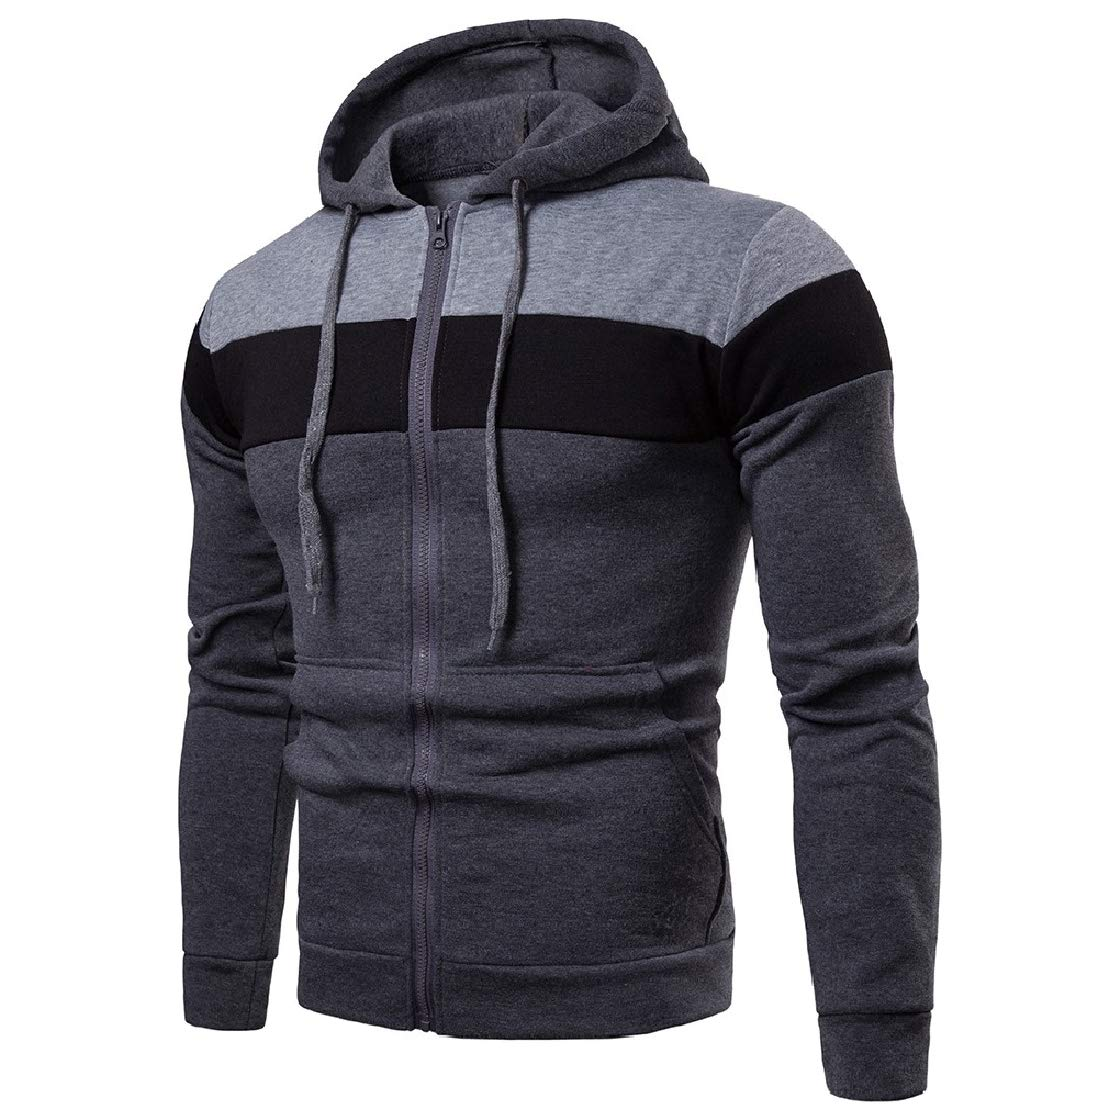 YUNY Mens Stitching Jackets Zip-up Casual Hood Cardigan Outwear Tracksuit Top Gray L